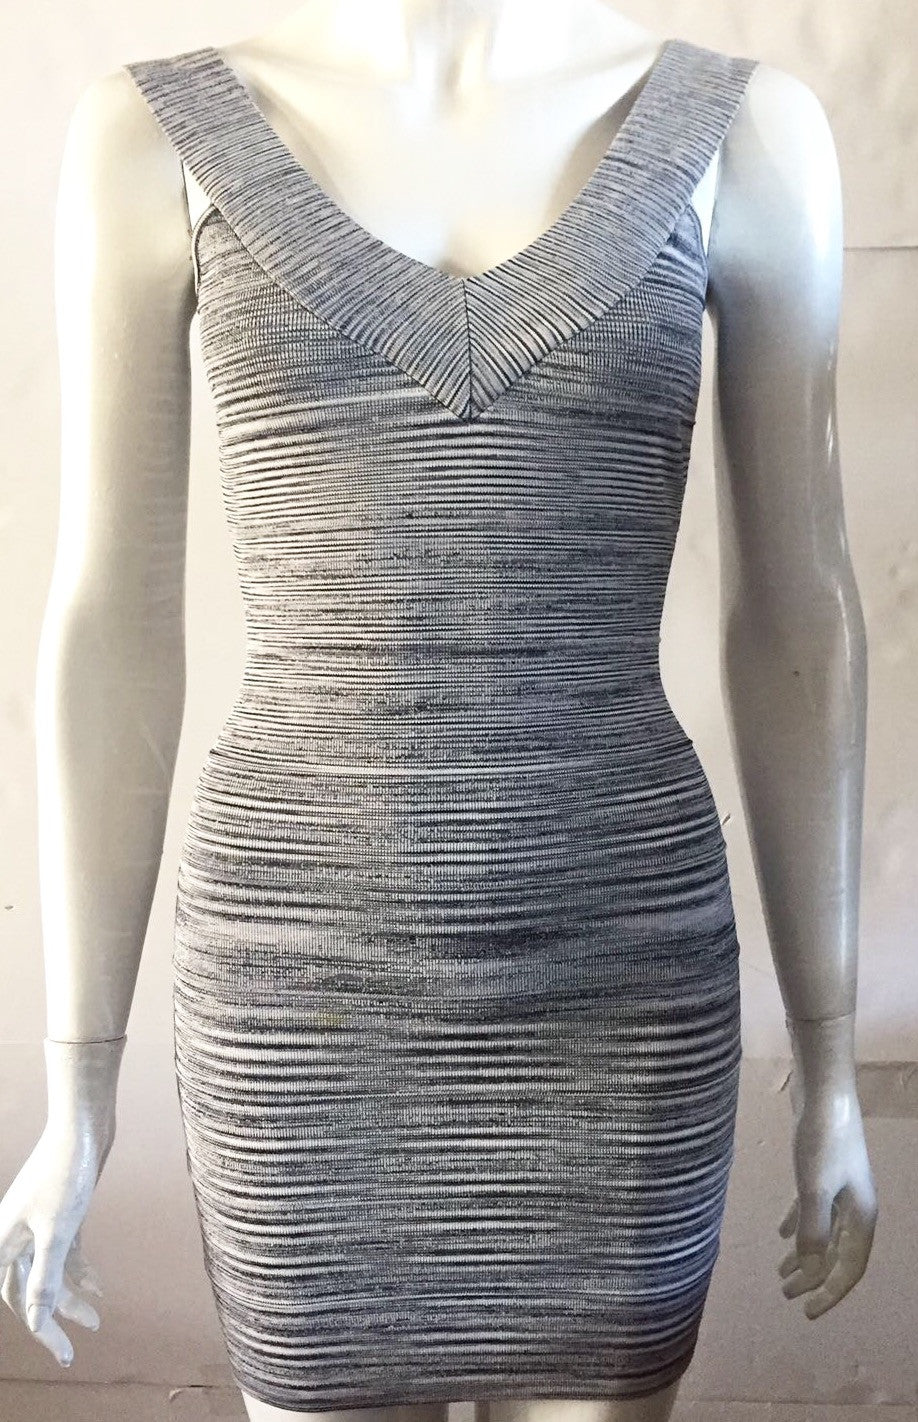 Guess By Marciano Grey Sleeve Bandage Dress Size S P11R6500000